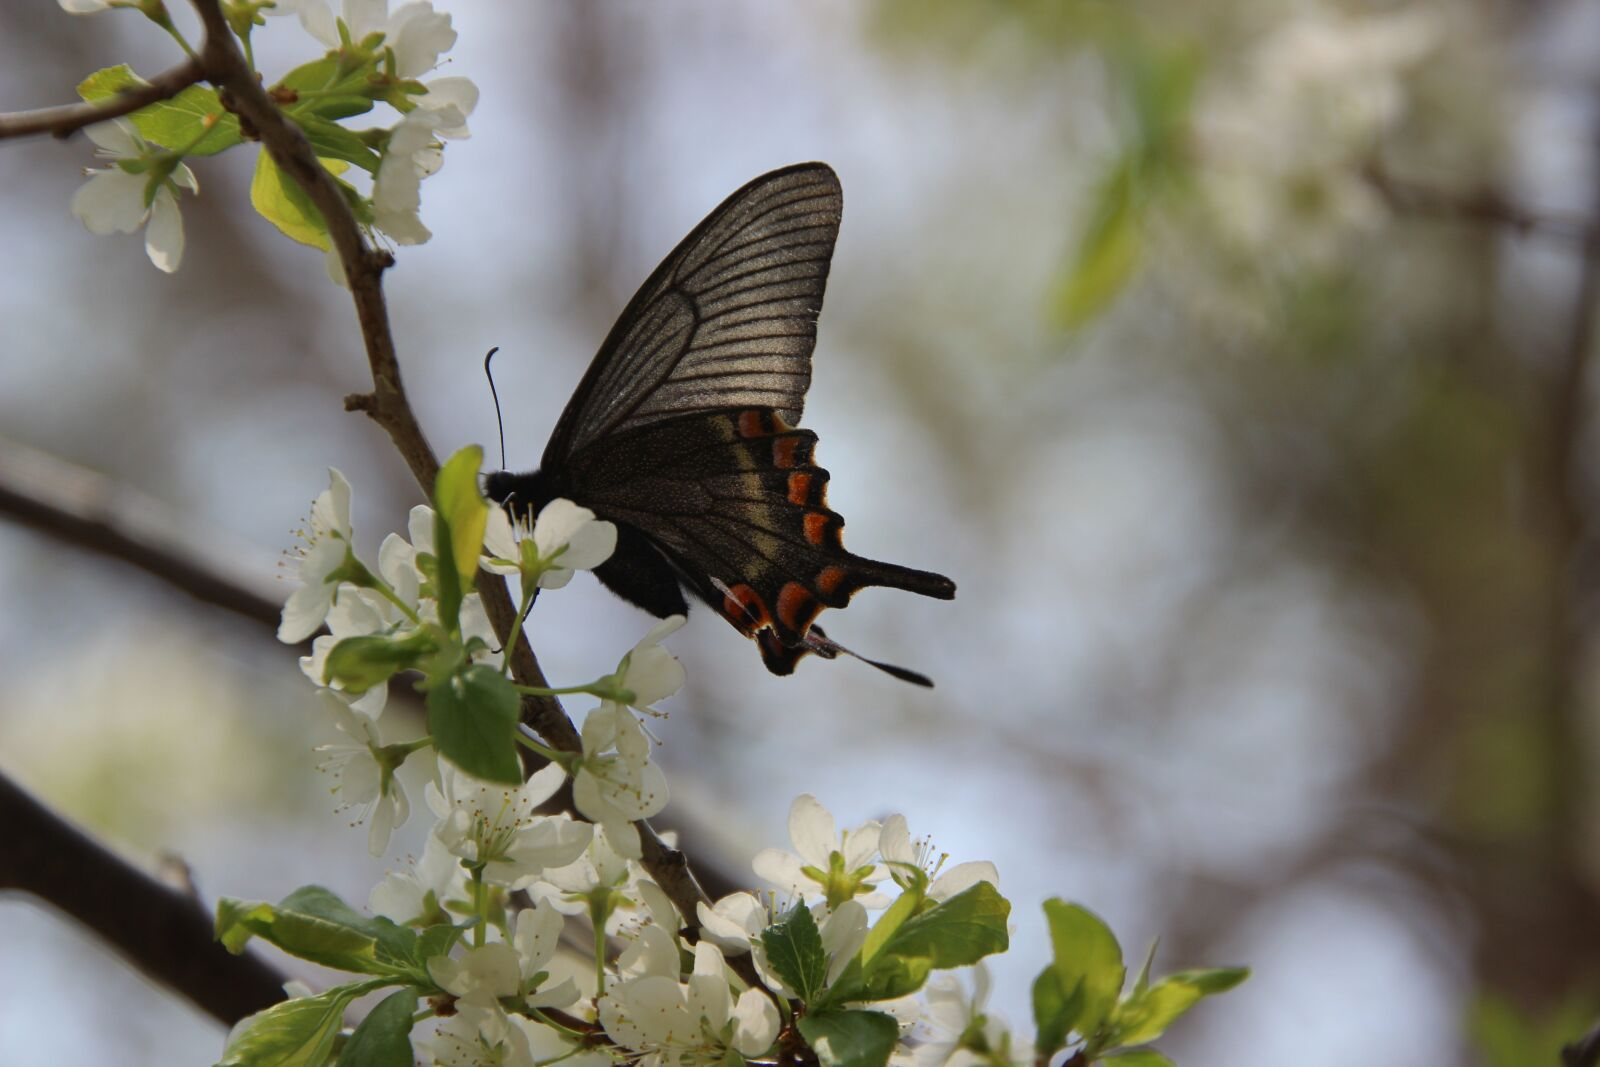 """Canon EOS 600D (Rebel EOS T3i / EOS Kiss X5) sample photo. """"Nature, flowers, butterfly"""" photography"""